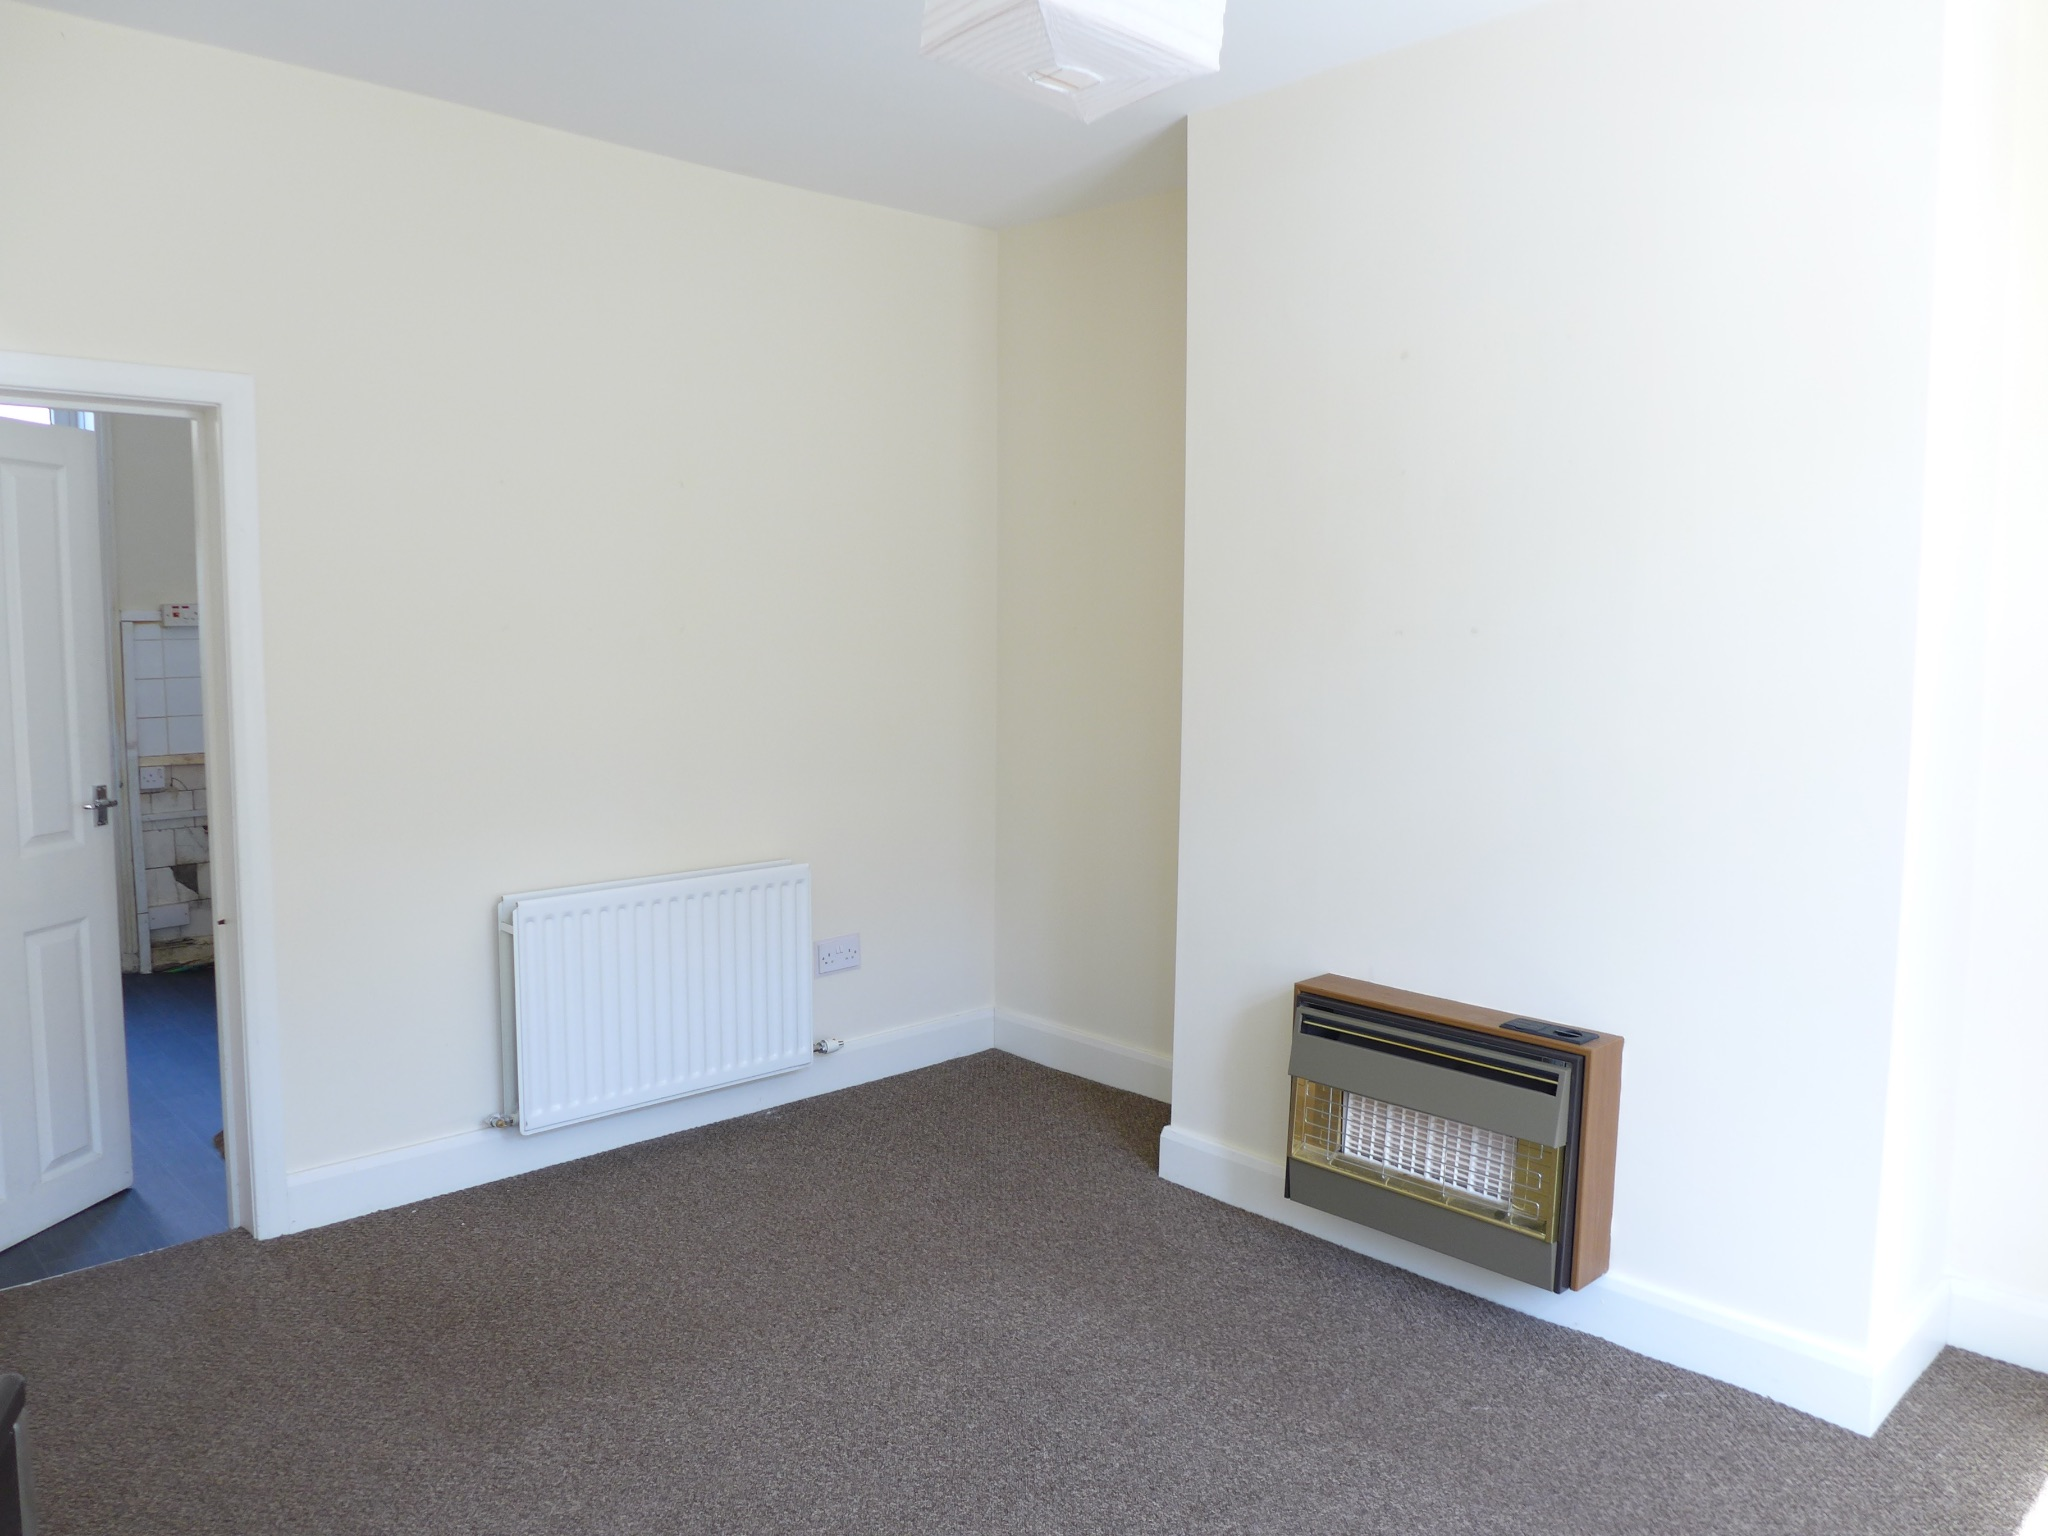 3 bedroom mid terraced house For Sale in Todmorden - Photograph 2.